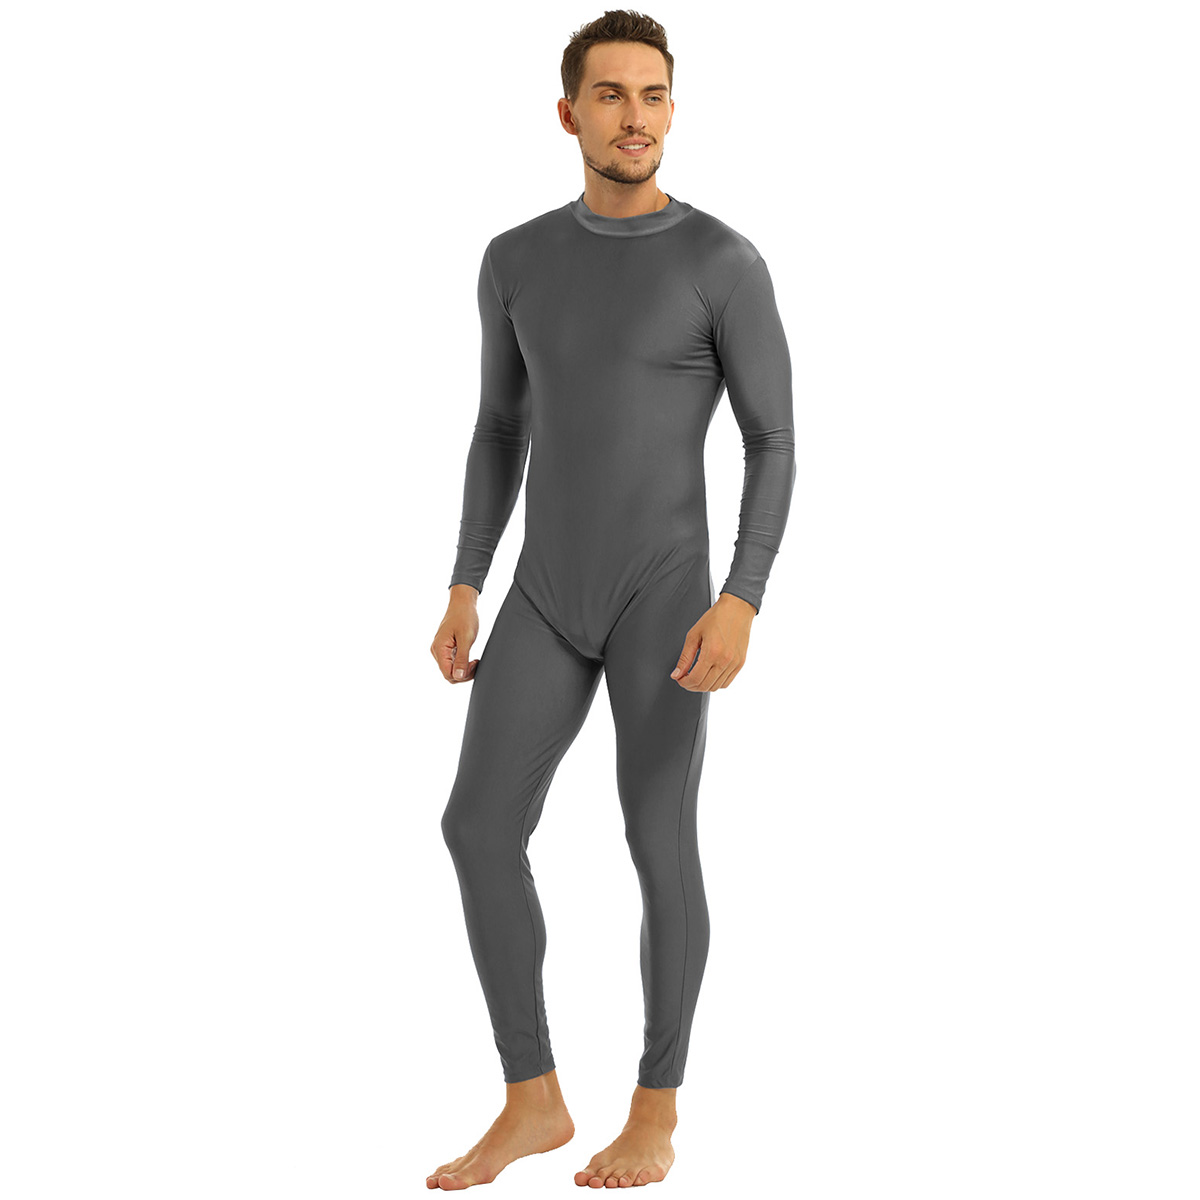 Mens Well Fit One Piece Leotards Long Sleeves Skinny Full-body Catsuit Adult Lycra Dancewear Bodysuit Gymnastics Workout Unitard 30